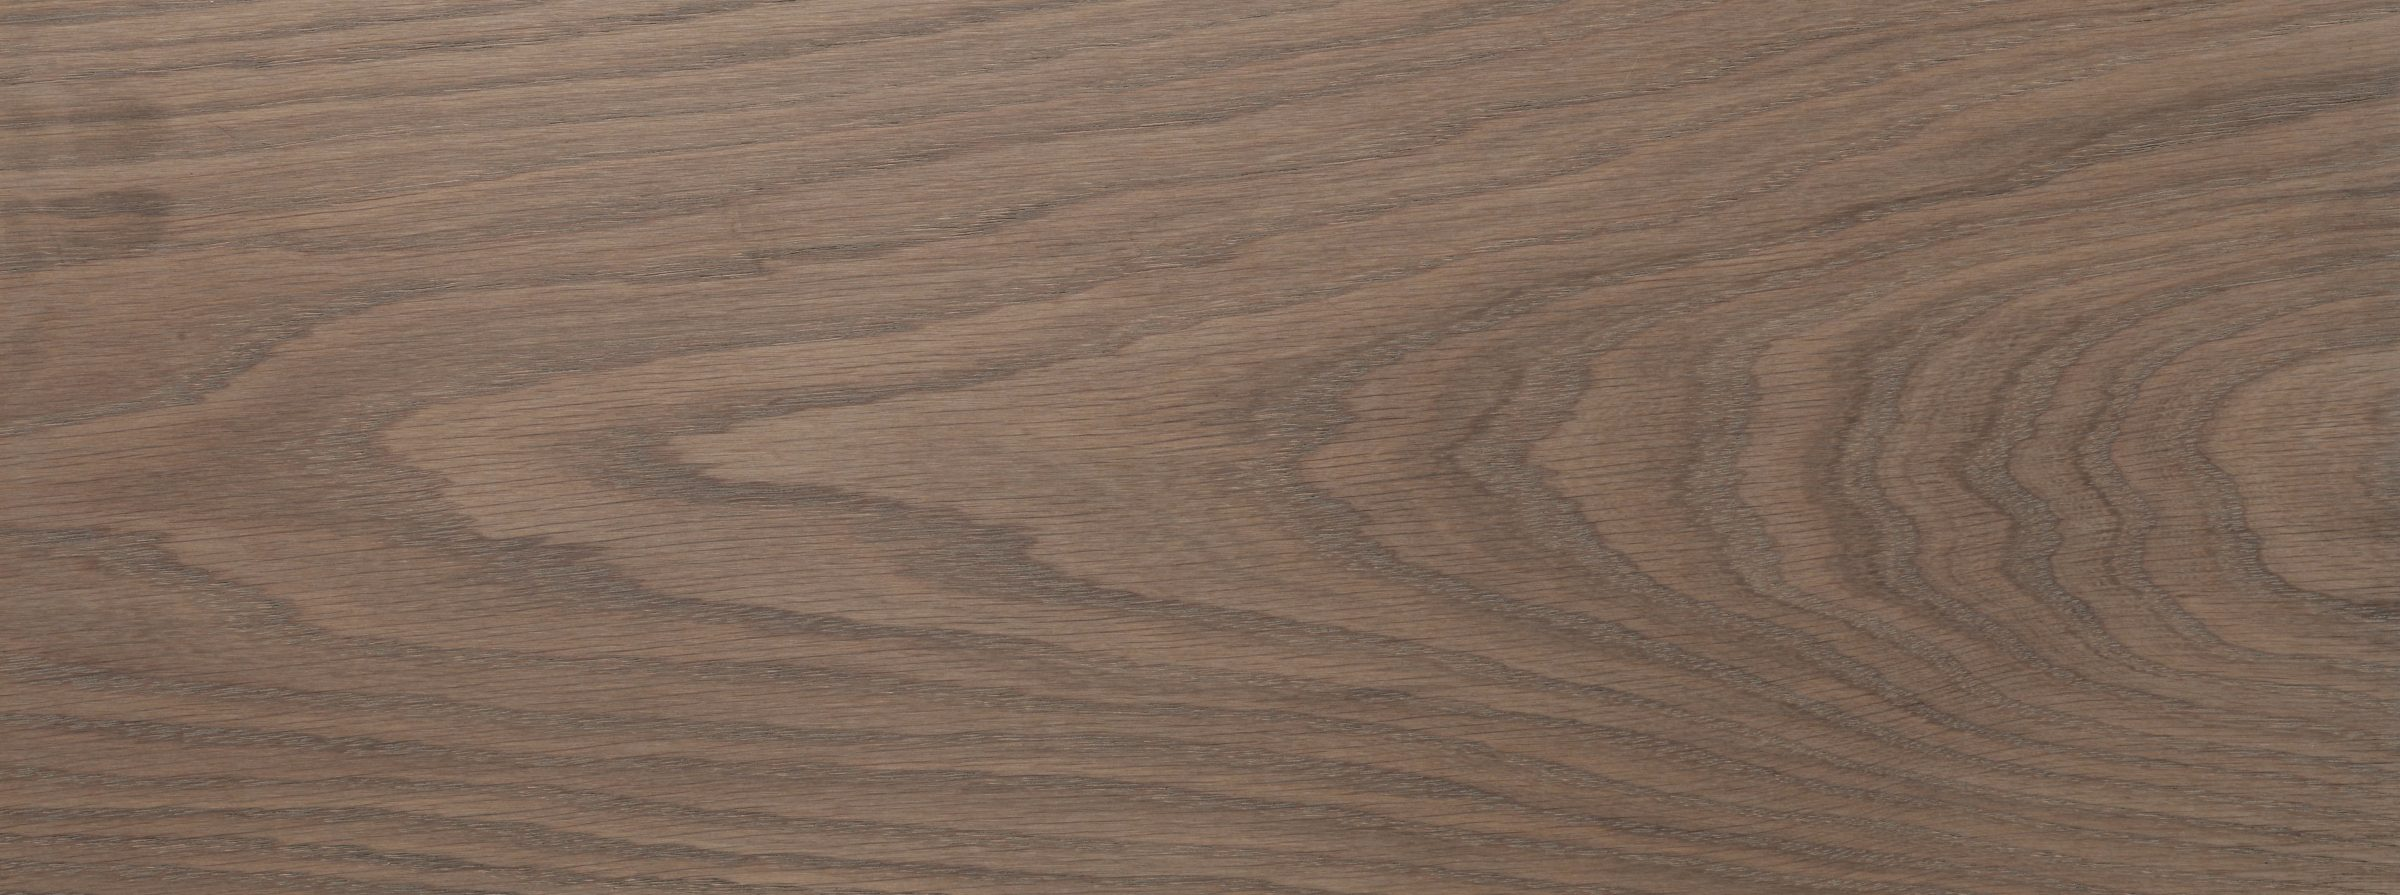 Oak 20mm engineered board, Oyster, 1sqm pack